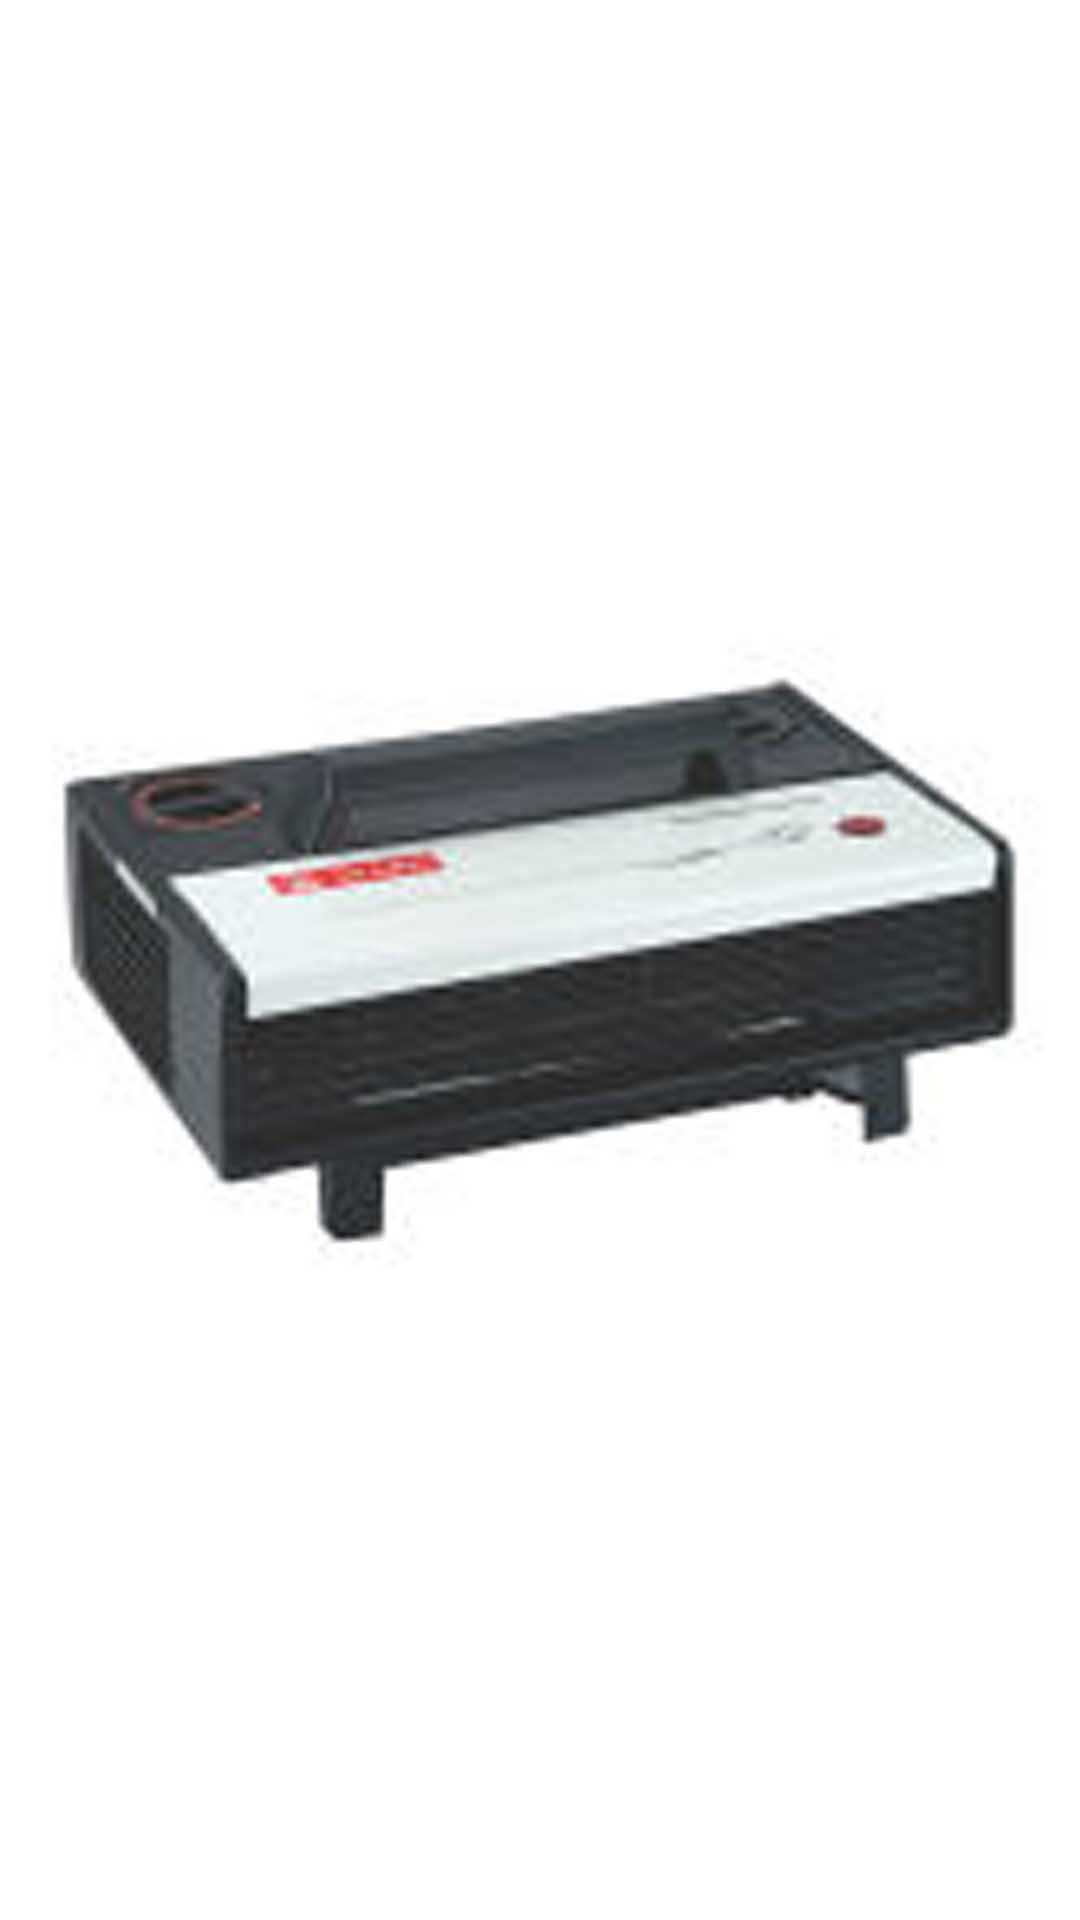 Marc-Wave-01-2000W-Room-Heater